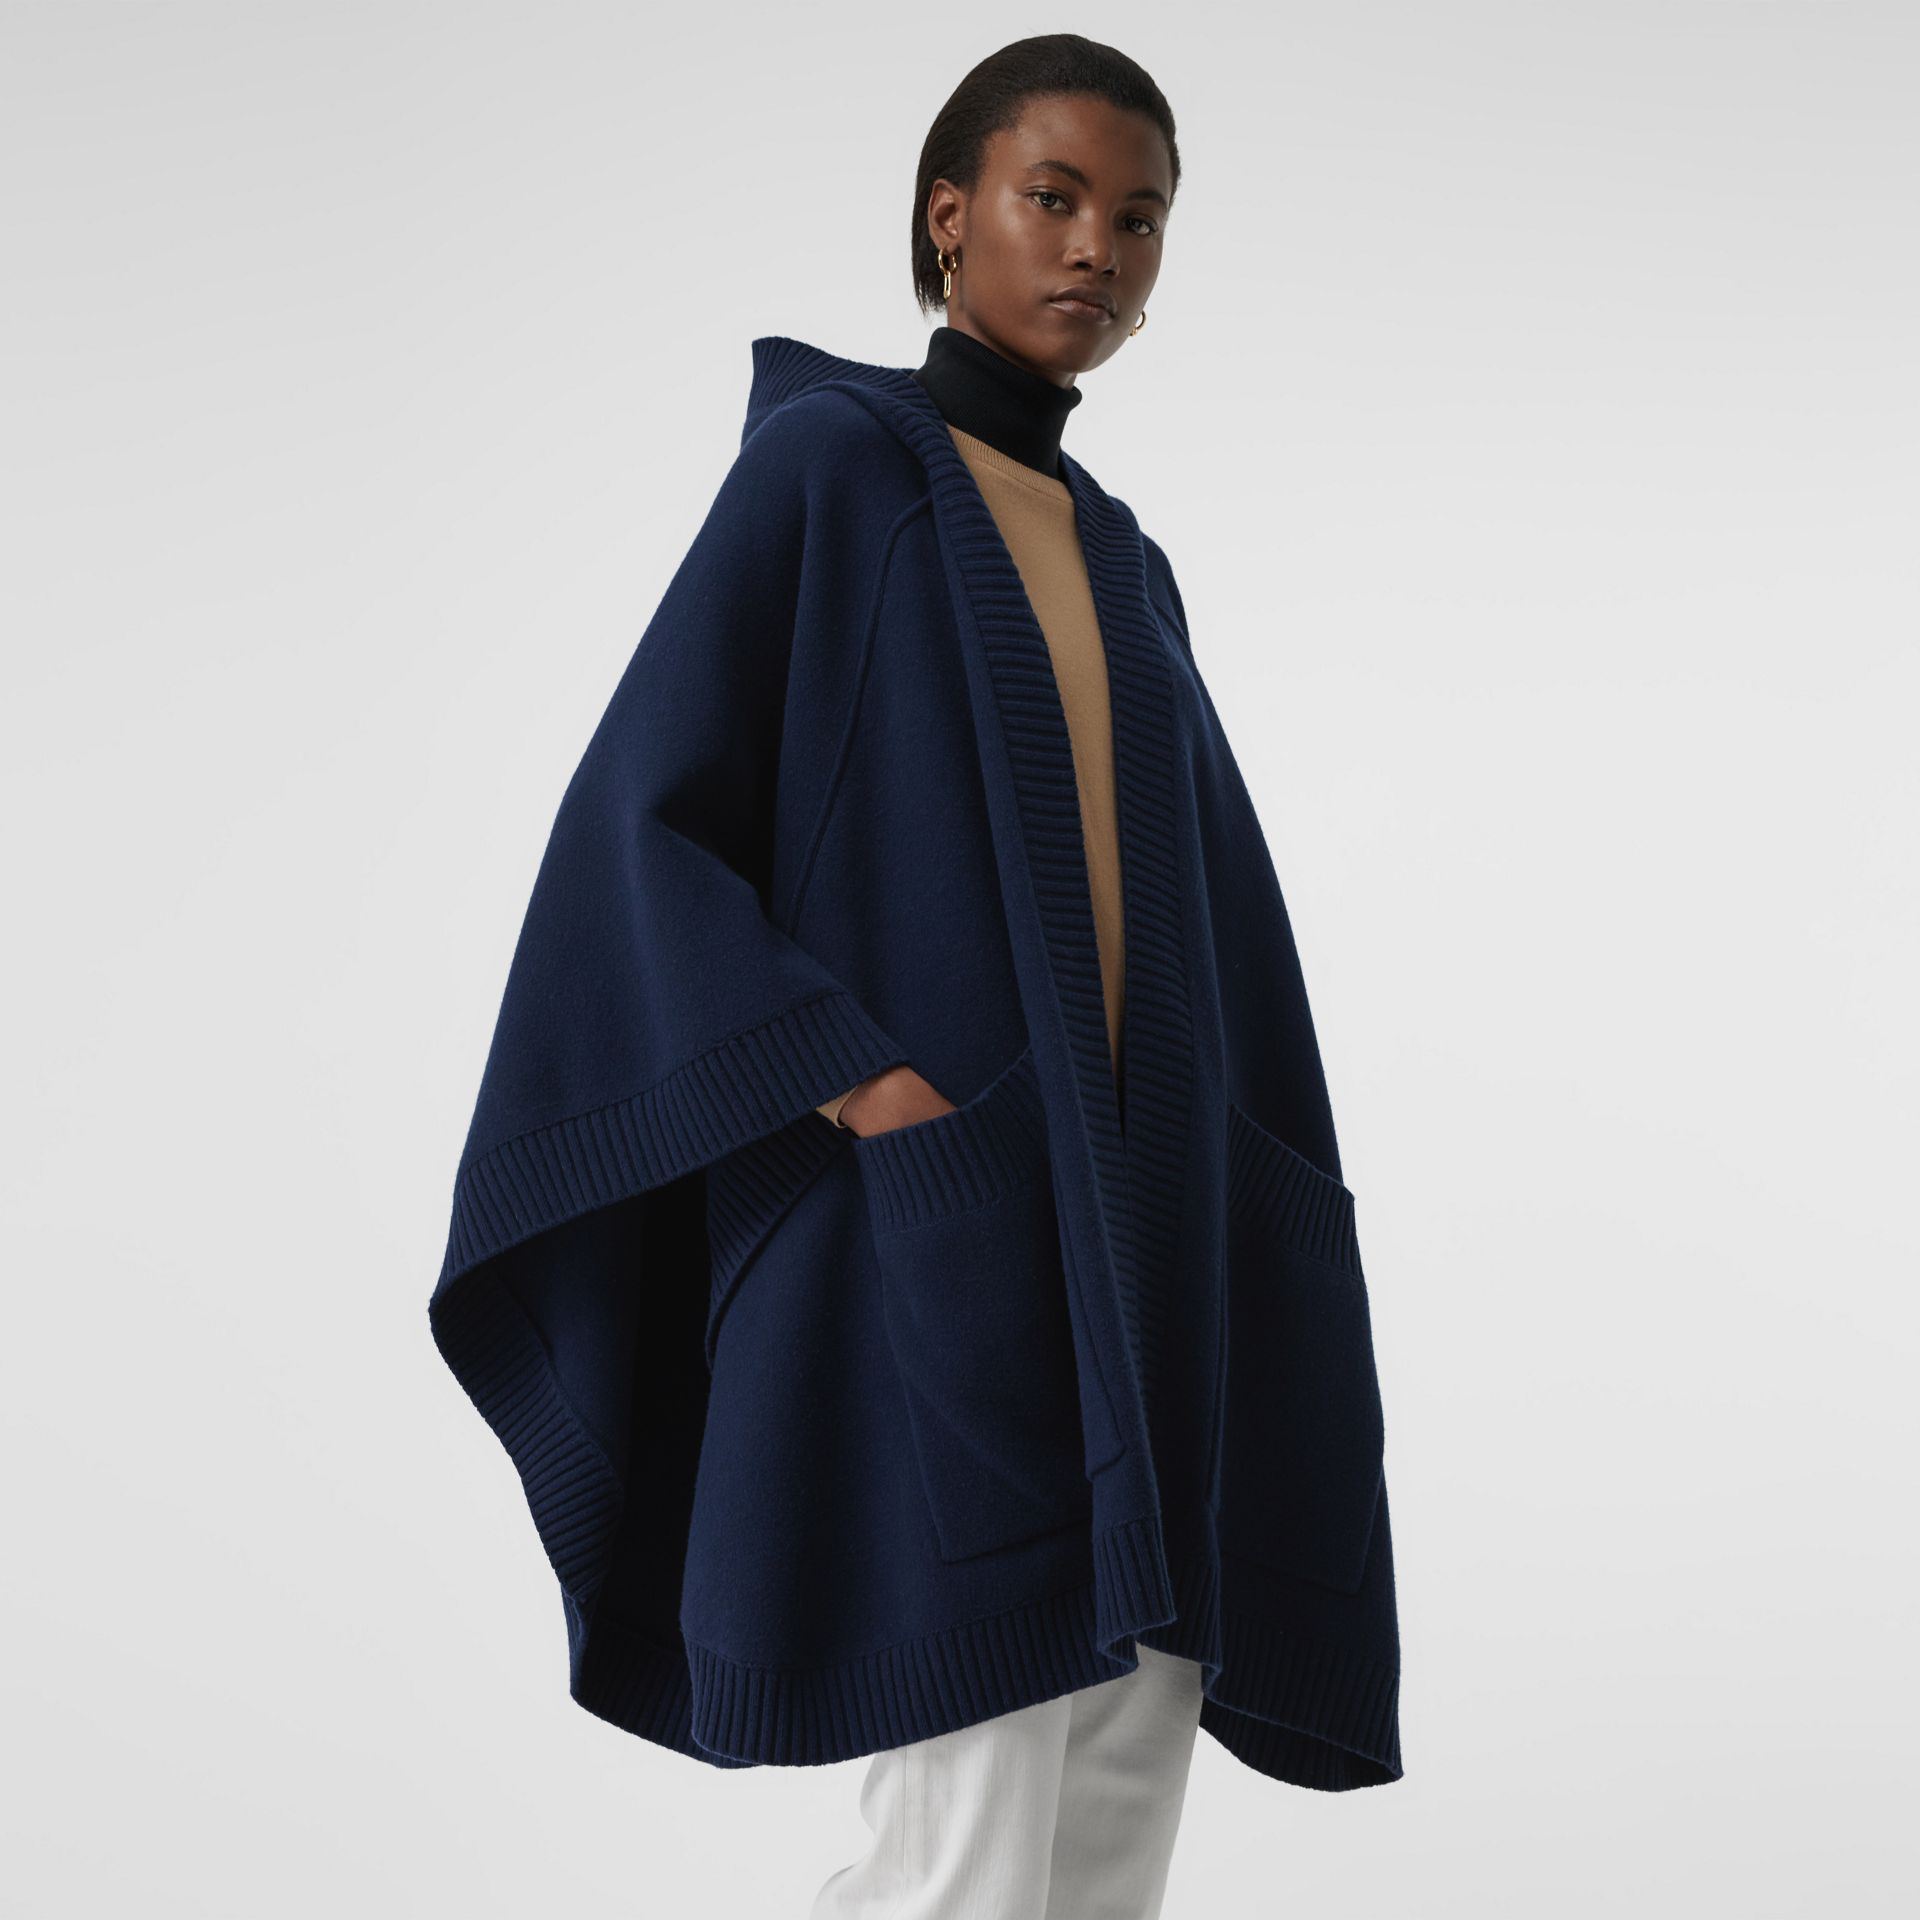 Crest Wool Blend Jacquard Hooded Cape in Navy - Women | Burberry - gallery image 2